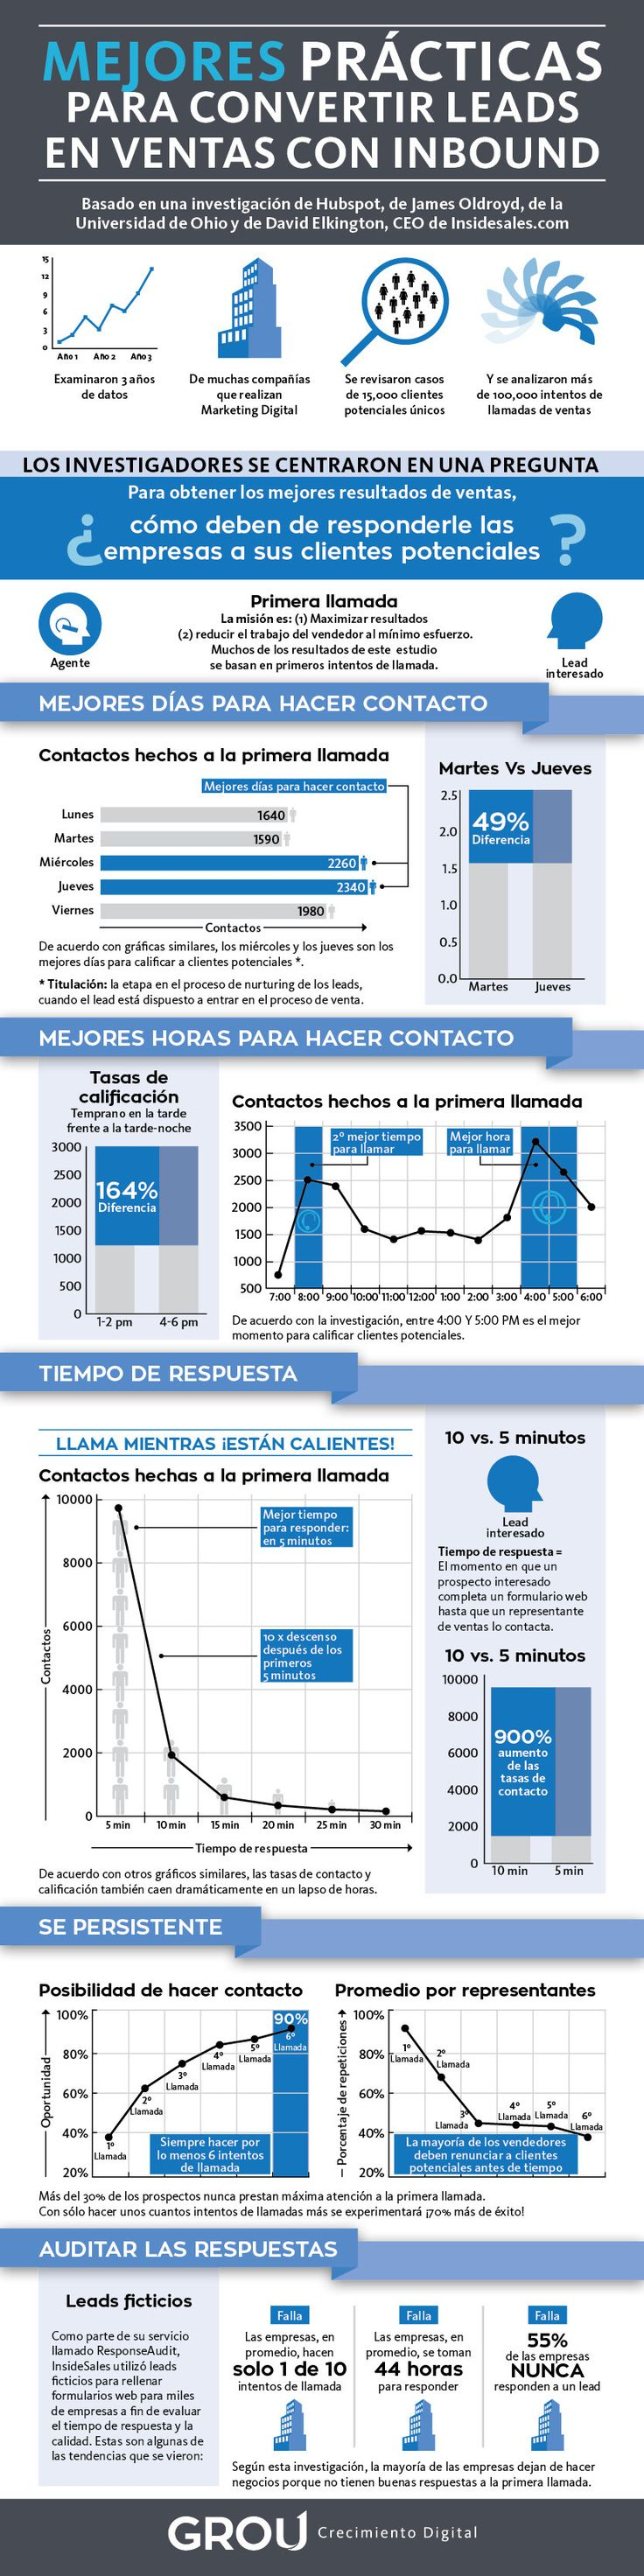 El proceso de cerrar ventas con Inbound Marketing #infografia #infographic #marketing